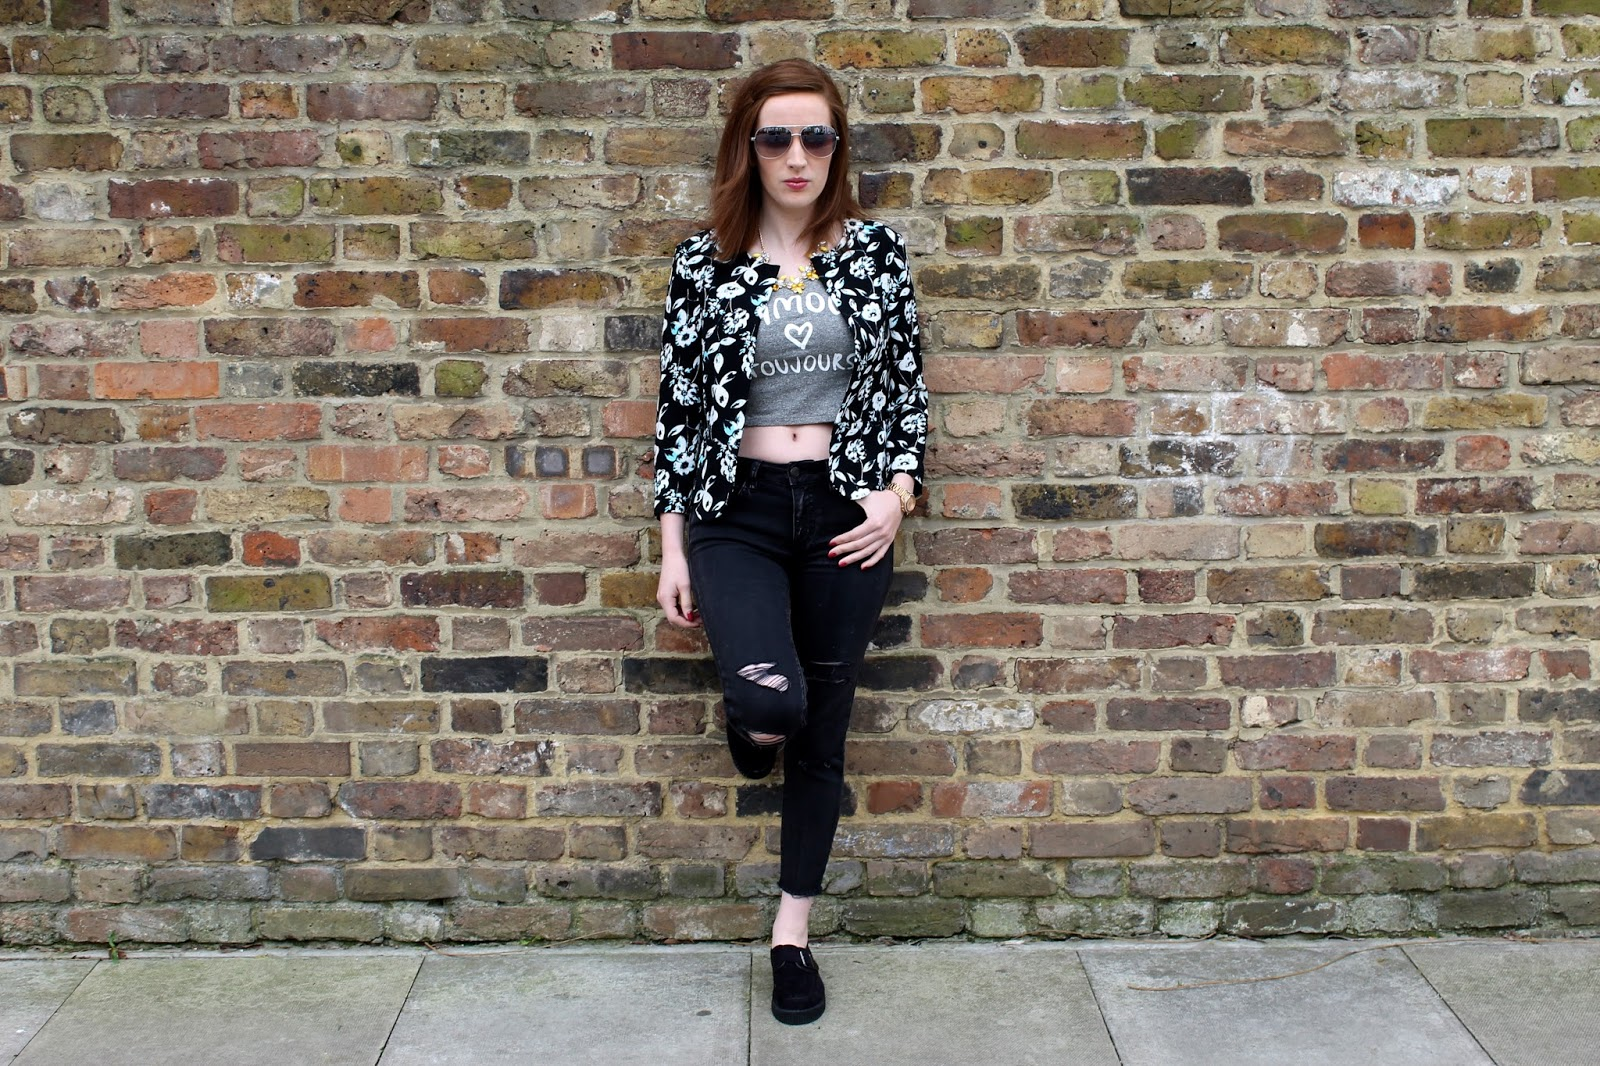 bec boop london fashion blogger